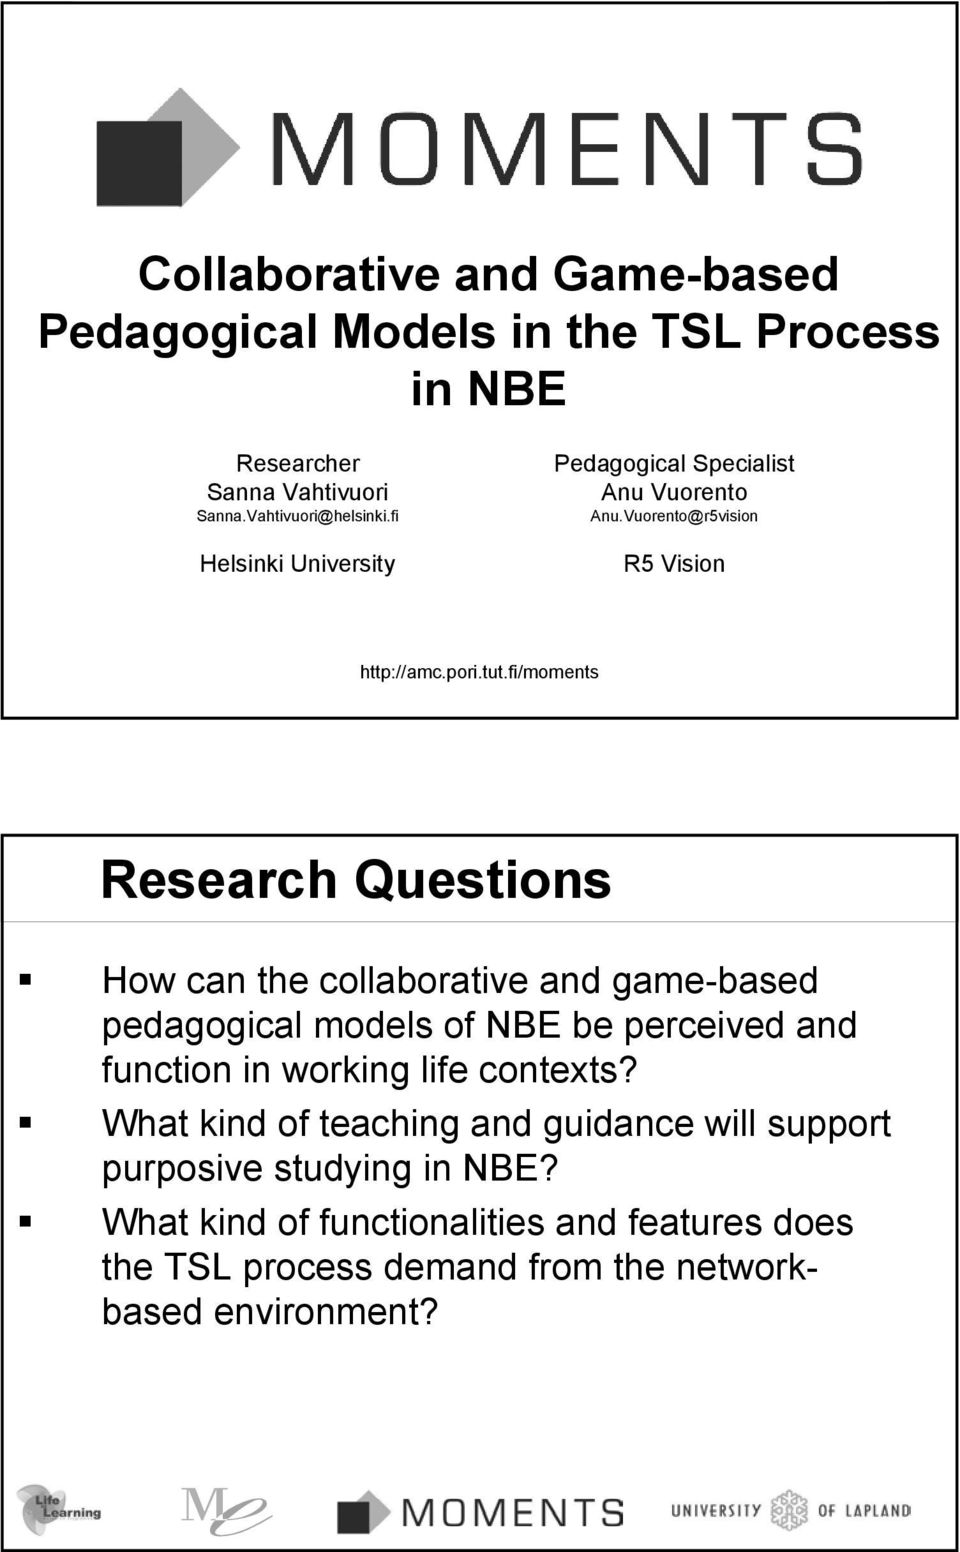 fi/moments Research Questions How can the collaborative and game-based pedagogical models of NBE be perceived and function in working life